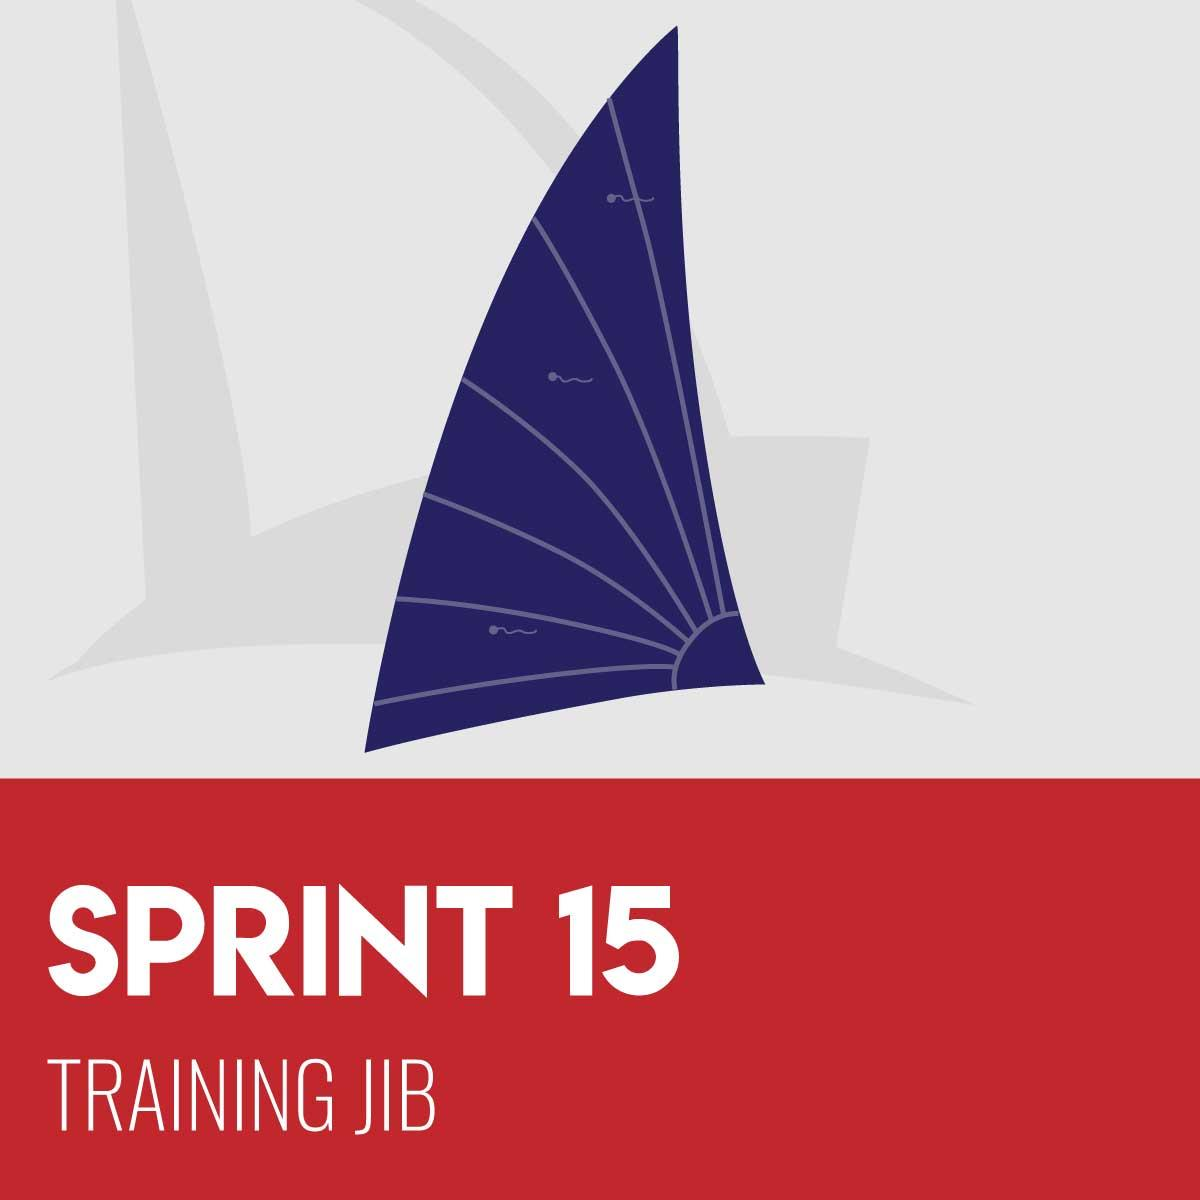 Sprint 15 Training Jib